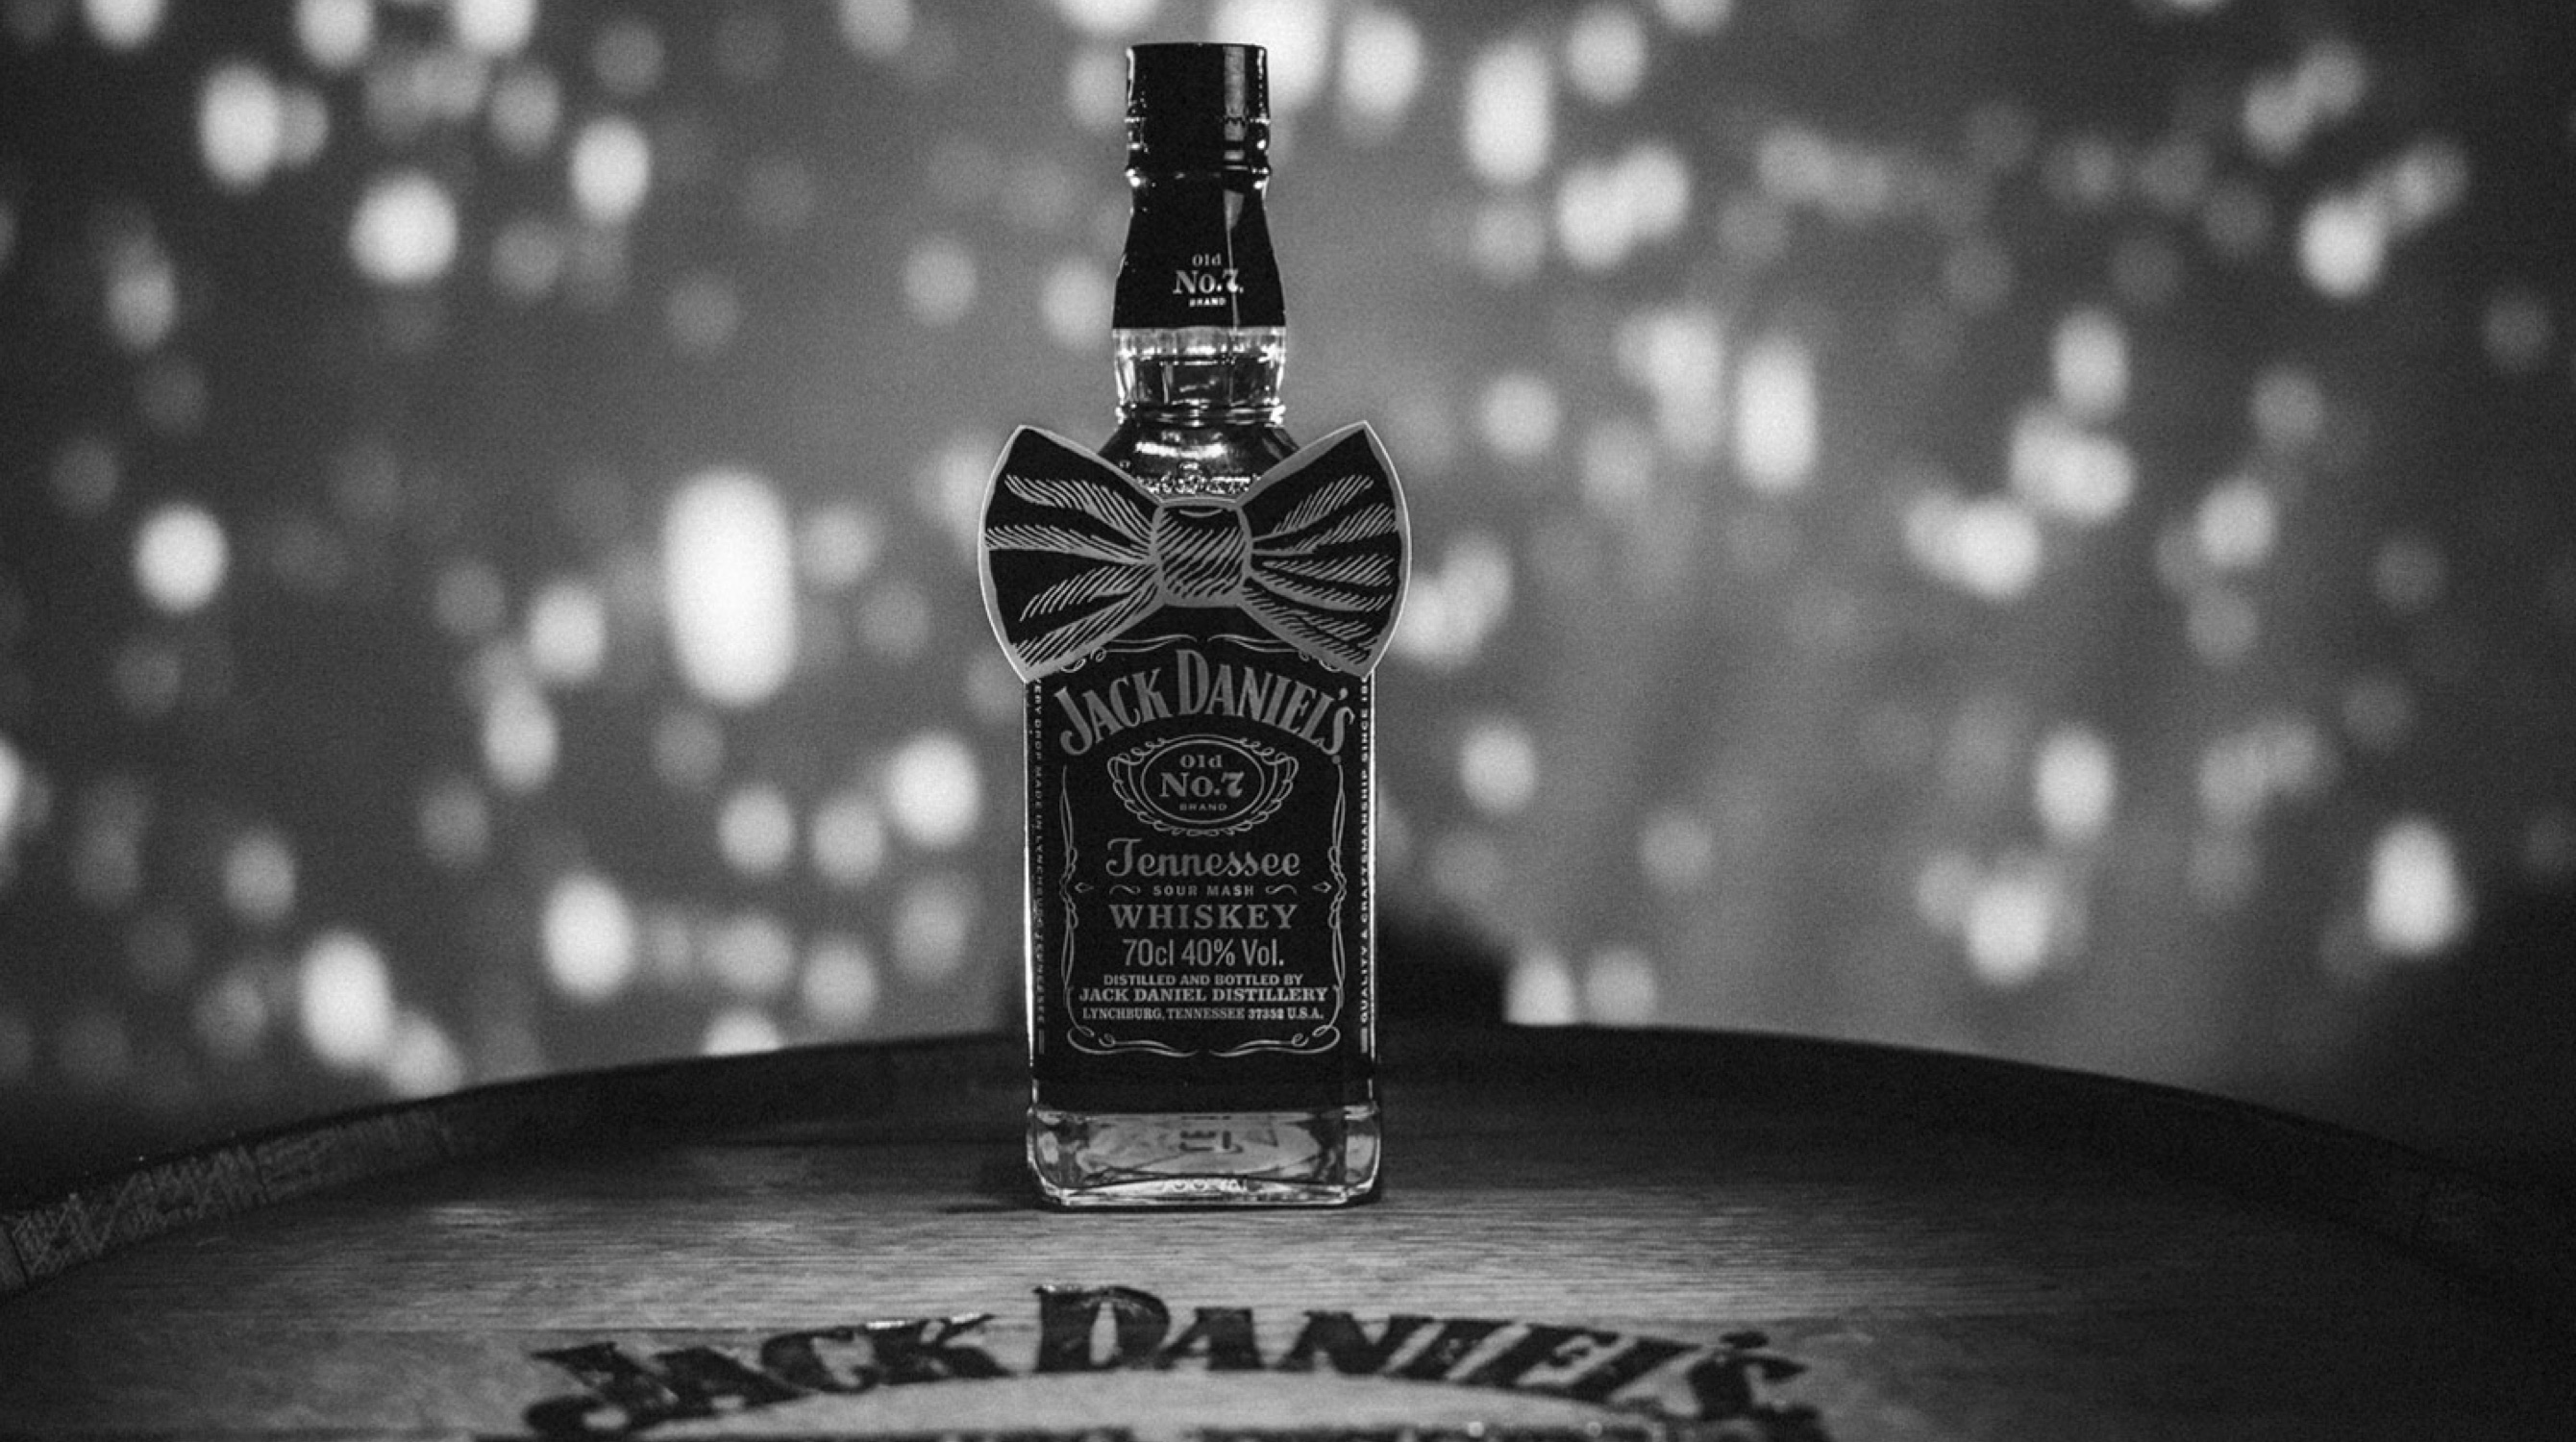 Jack Daniel's: Holiday Songs